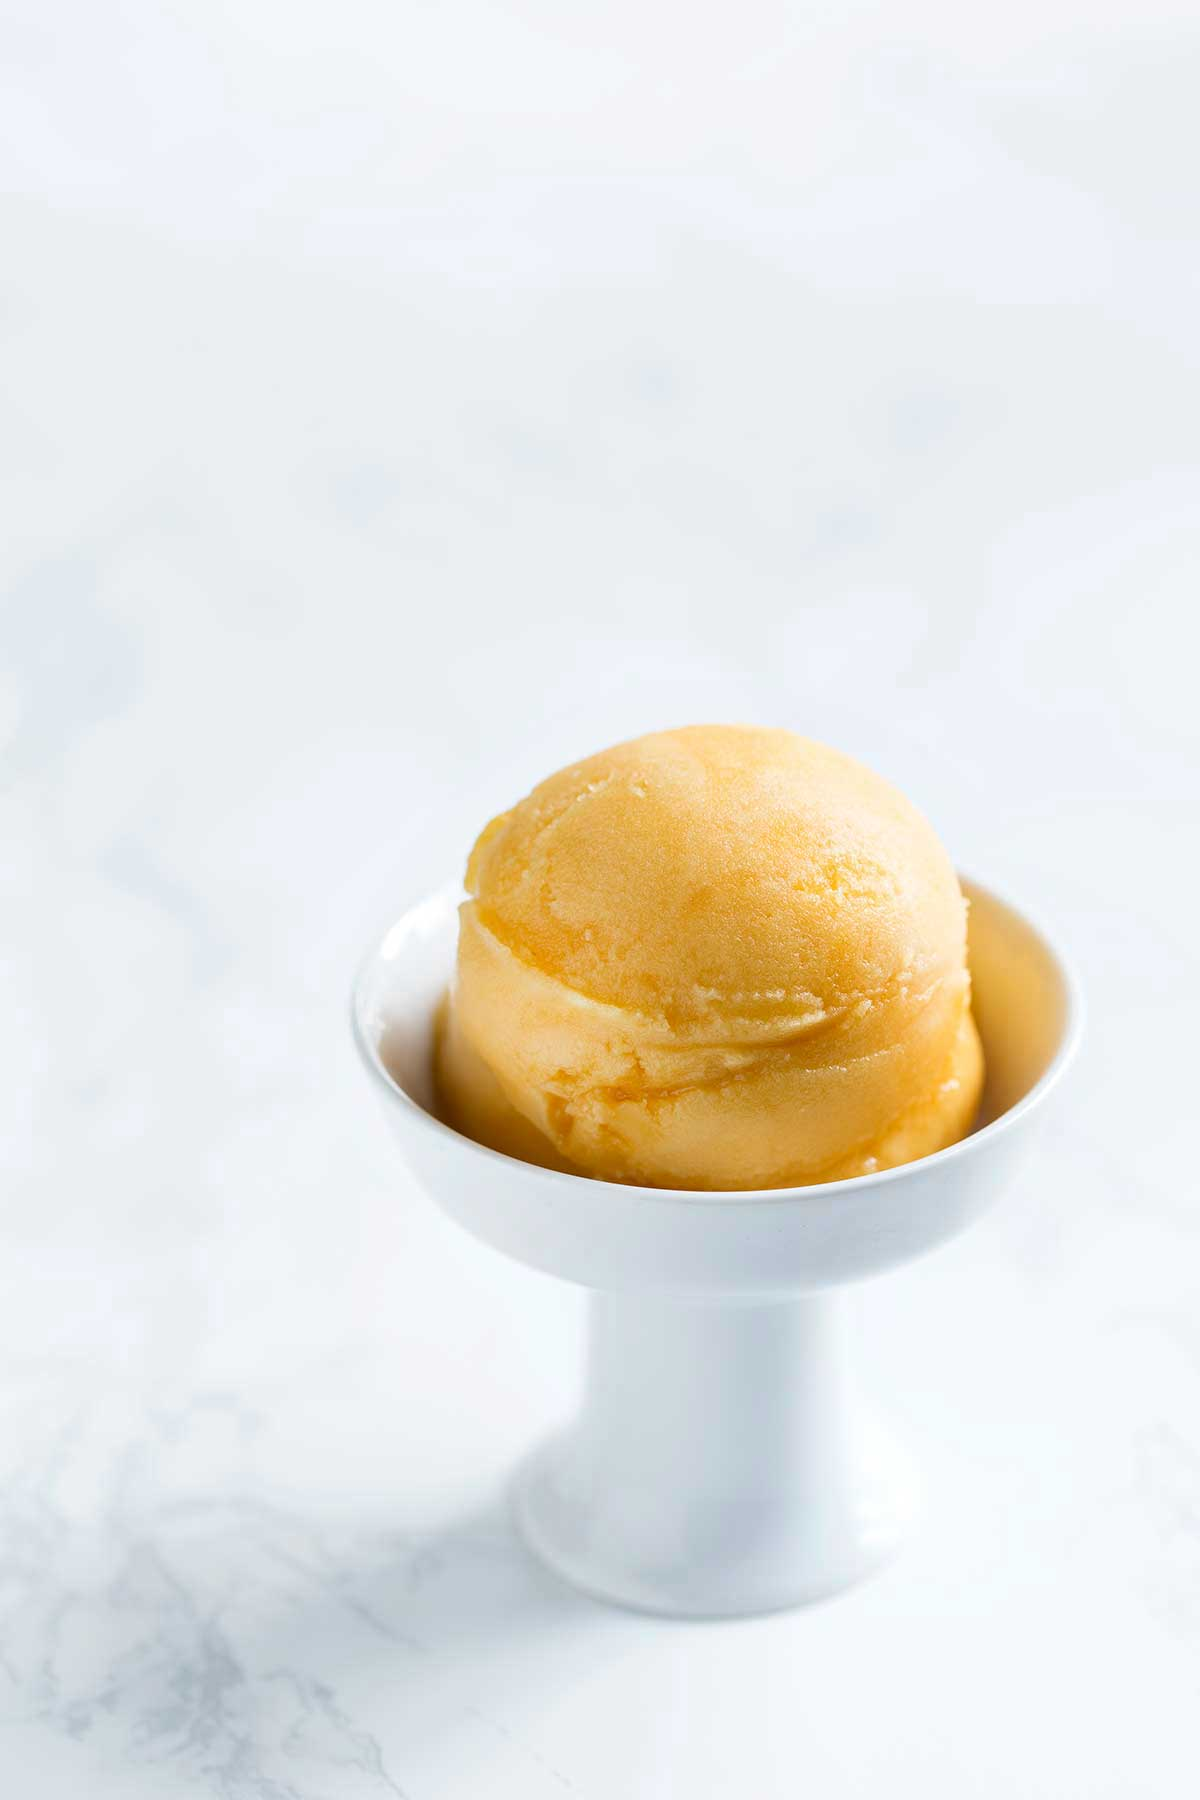 Passion fruit sorbet in a white bowl on a marble backdrop.